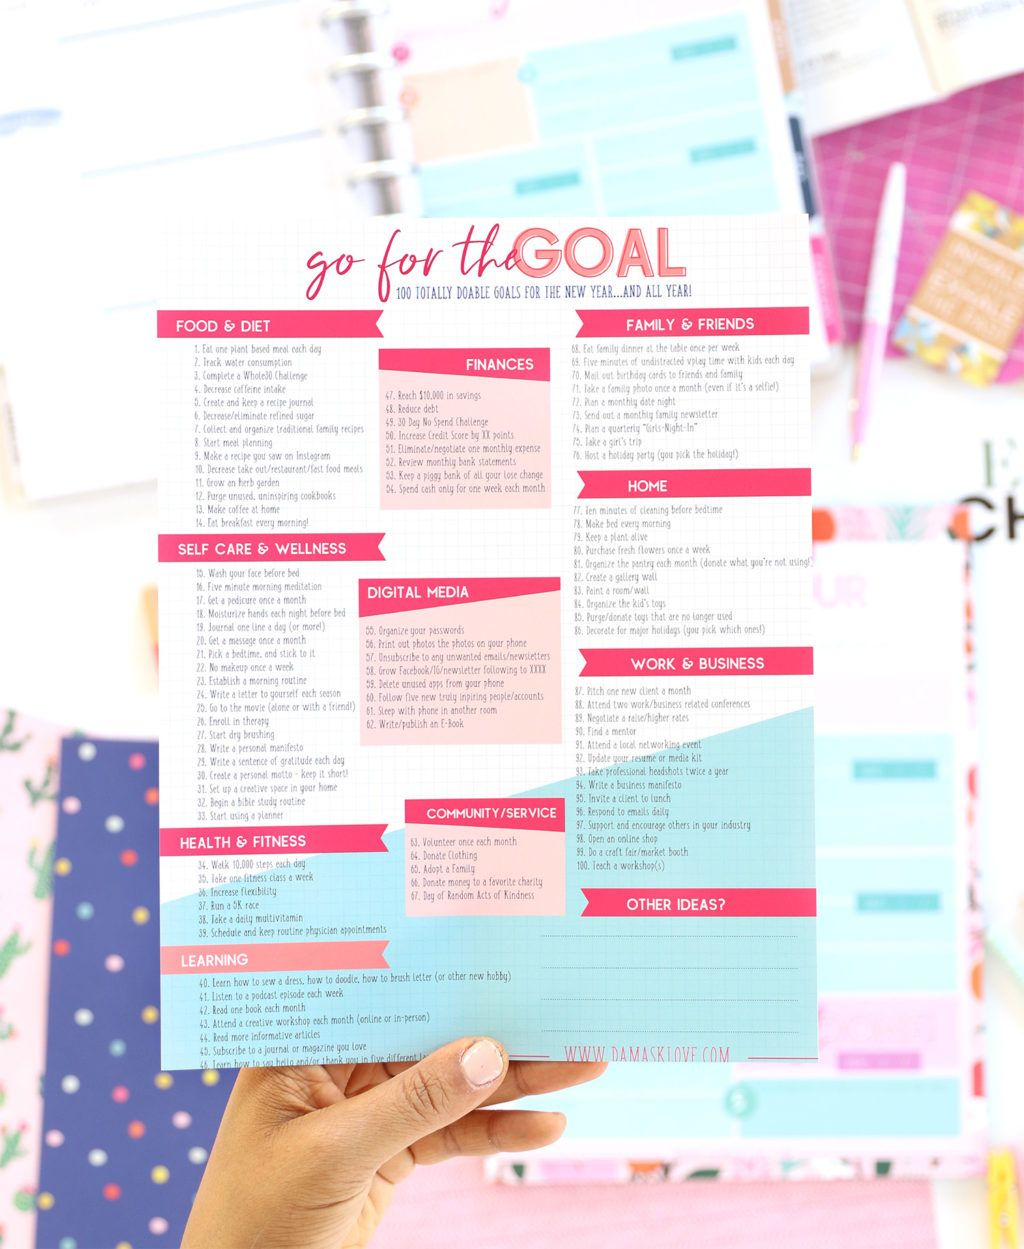 100 Doable Goals For The New Year